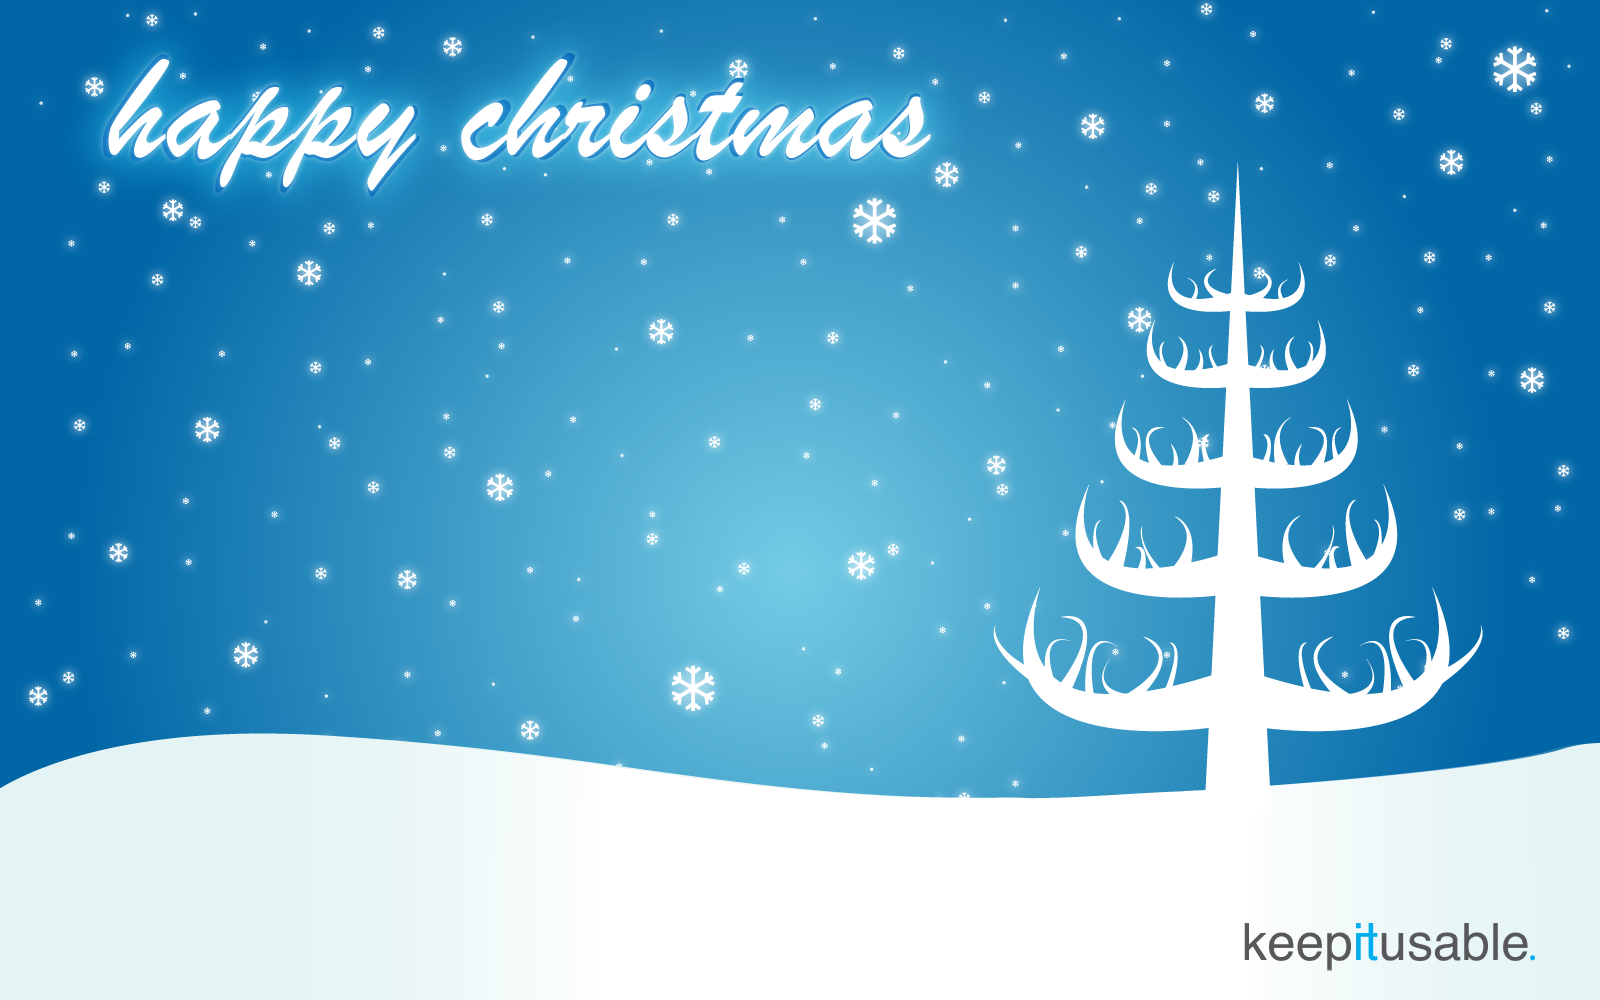 free amazing christmas wallpapers for mobile, tablet, desktop